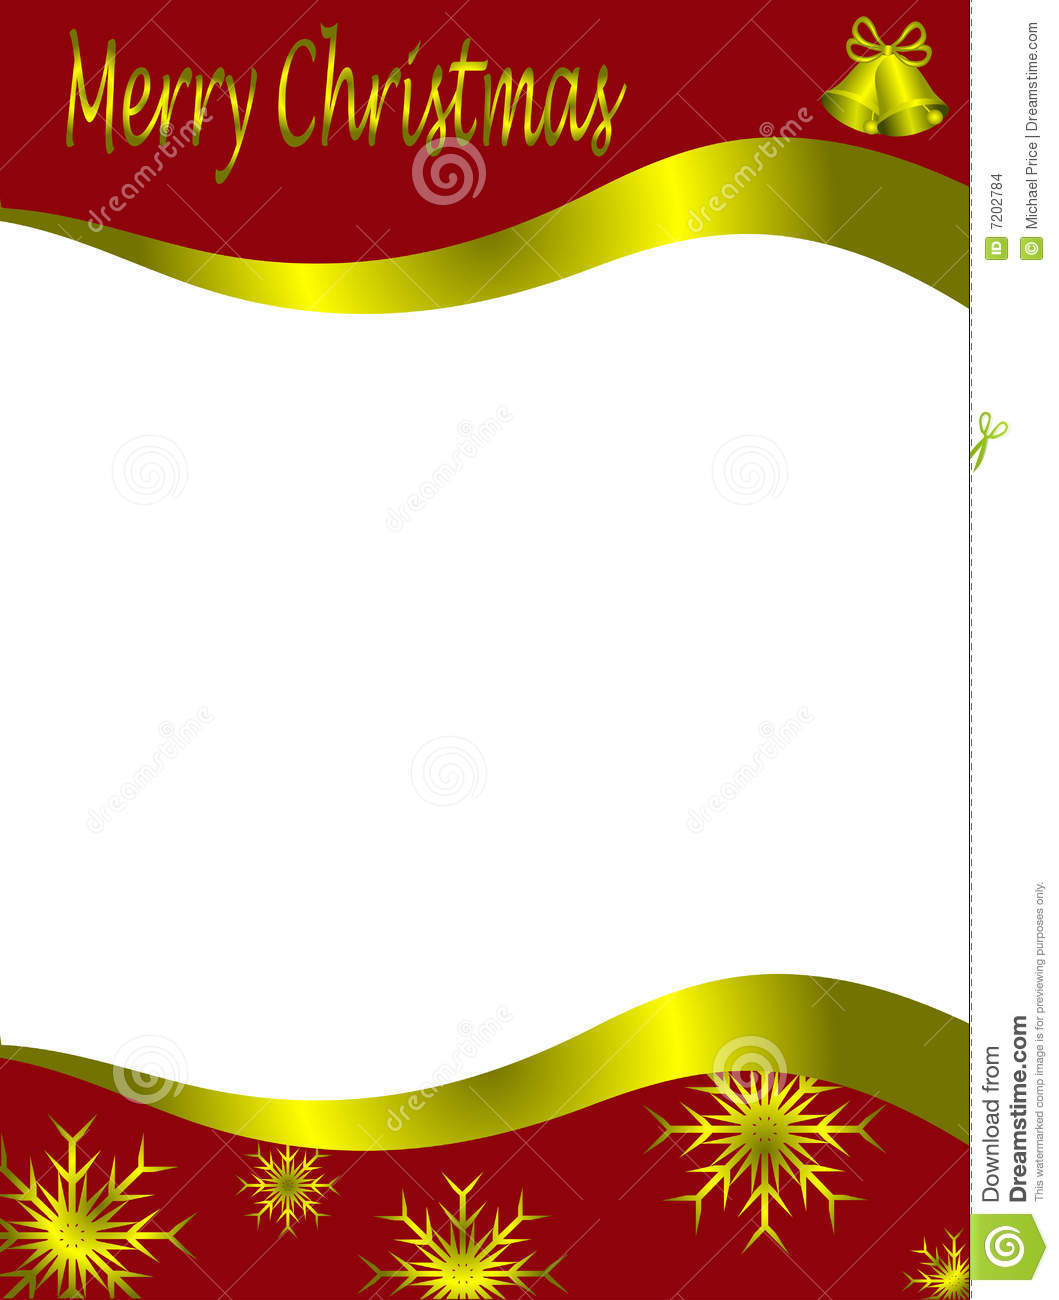 Christmas Letter Template Images Image 7202784 – Christmas Card Letter Templates